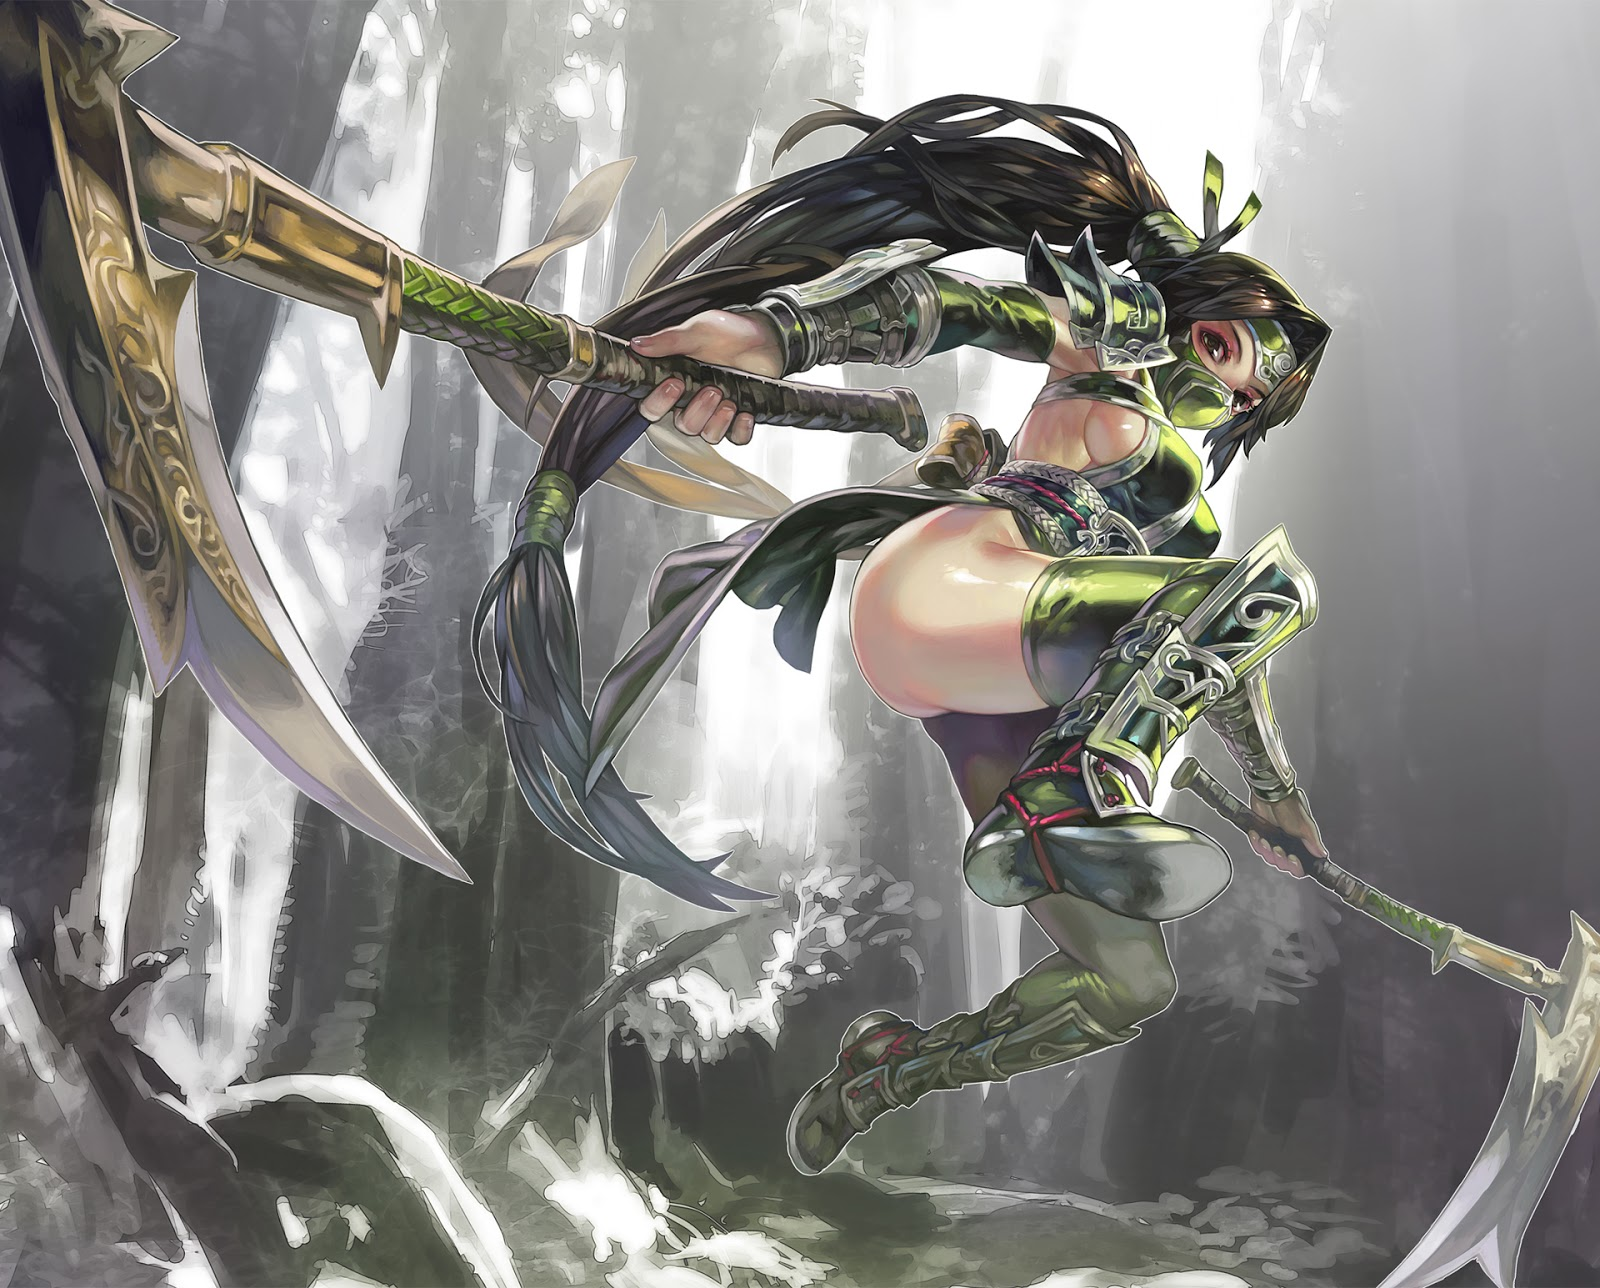 Hd Wallpaper Sexy Akali League Of Legends 0734